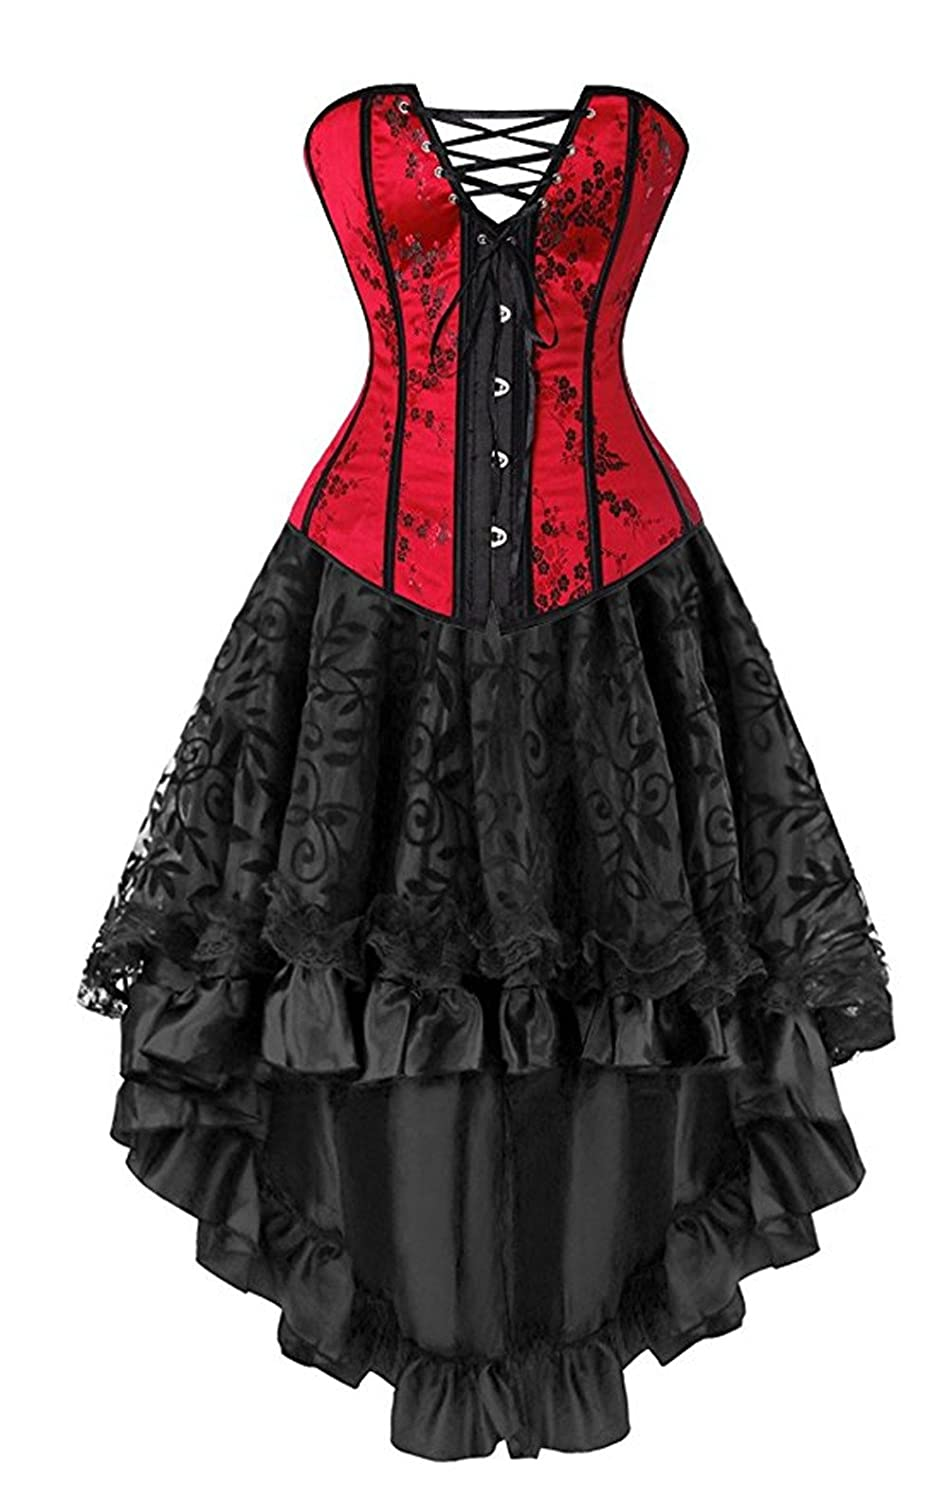 Martya Women's Basque Gothic Boned Lace Corsets and Steampunk Bustiers Dress with Skirt Plus Size